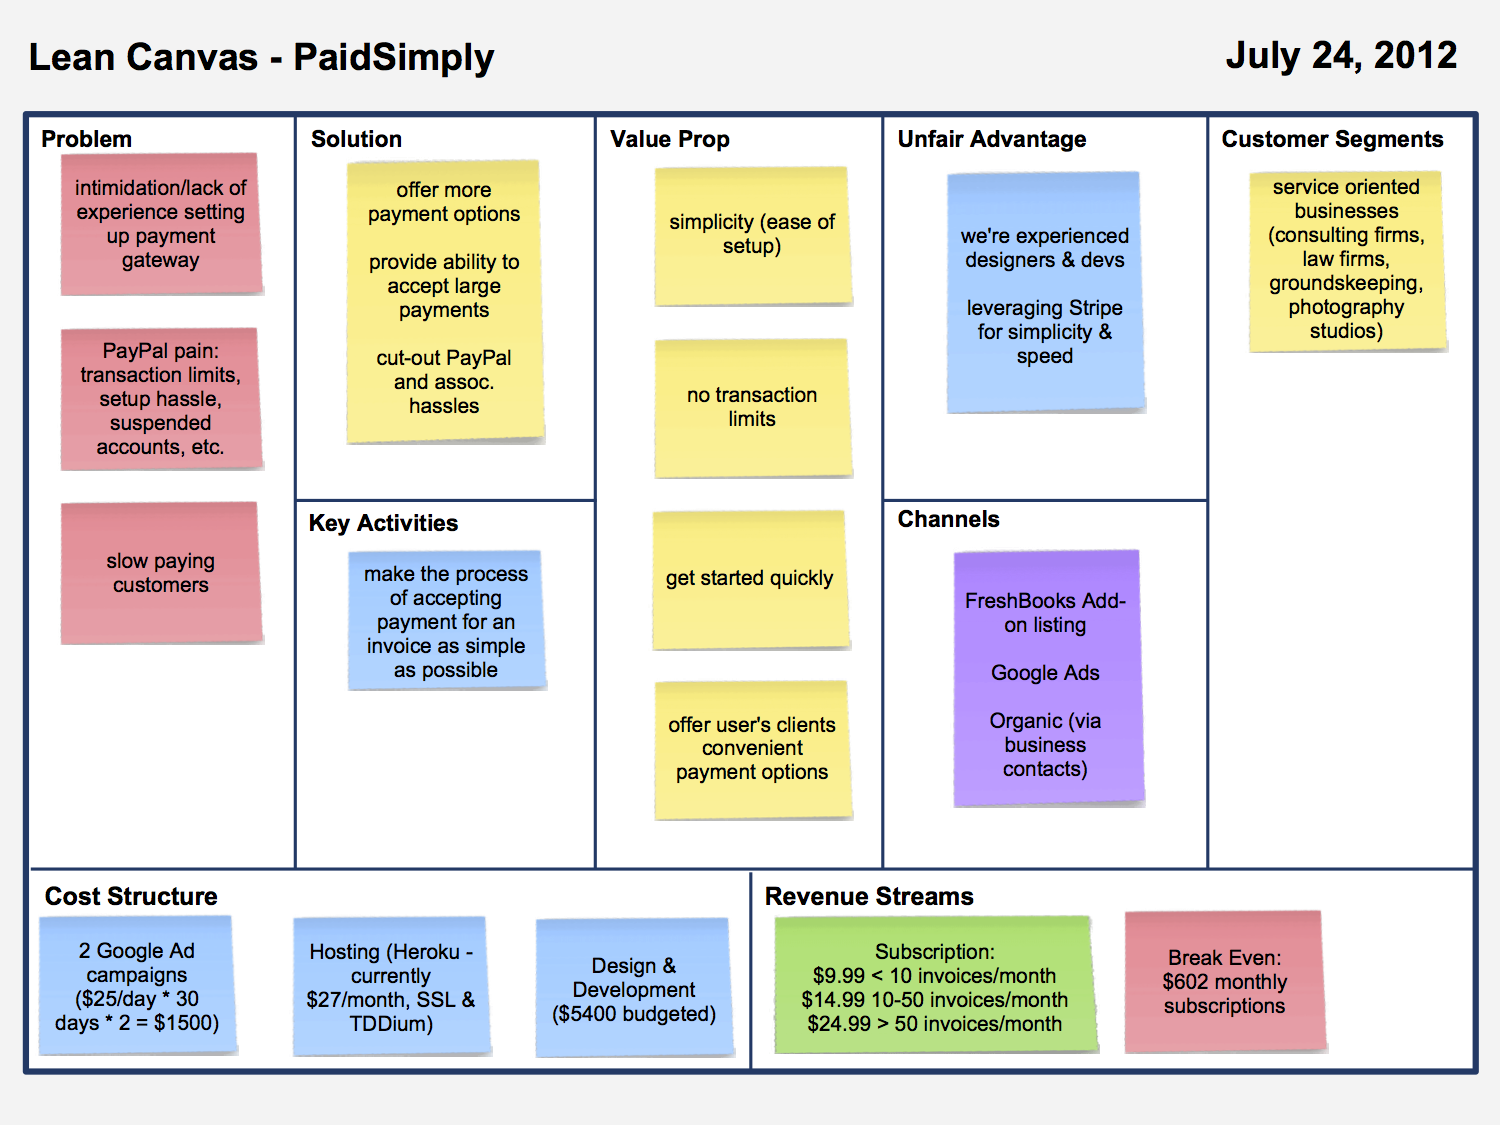 PaidSimply Lean Canvas for July 24, 2012